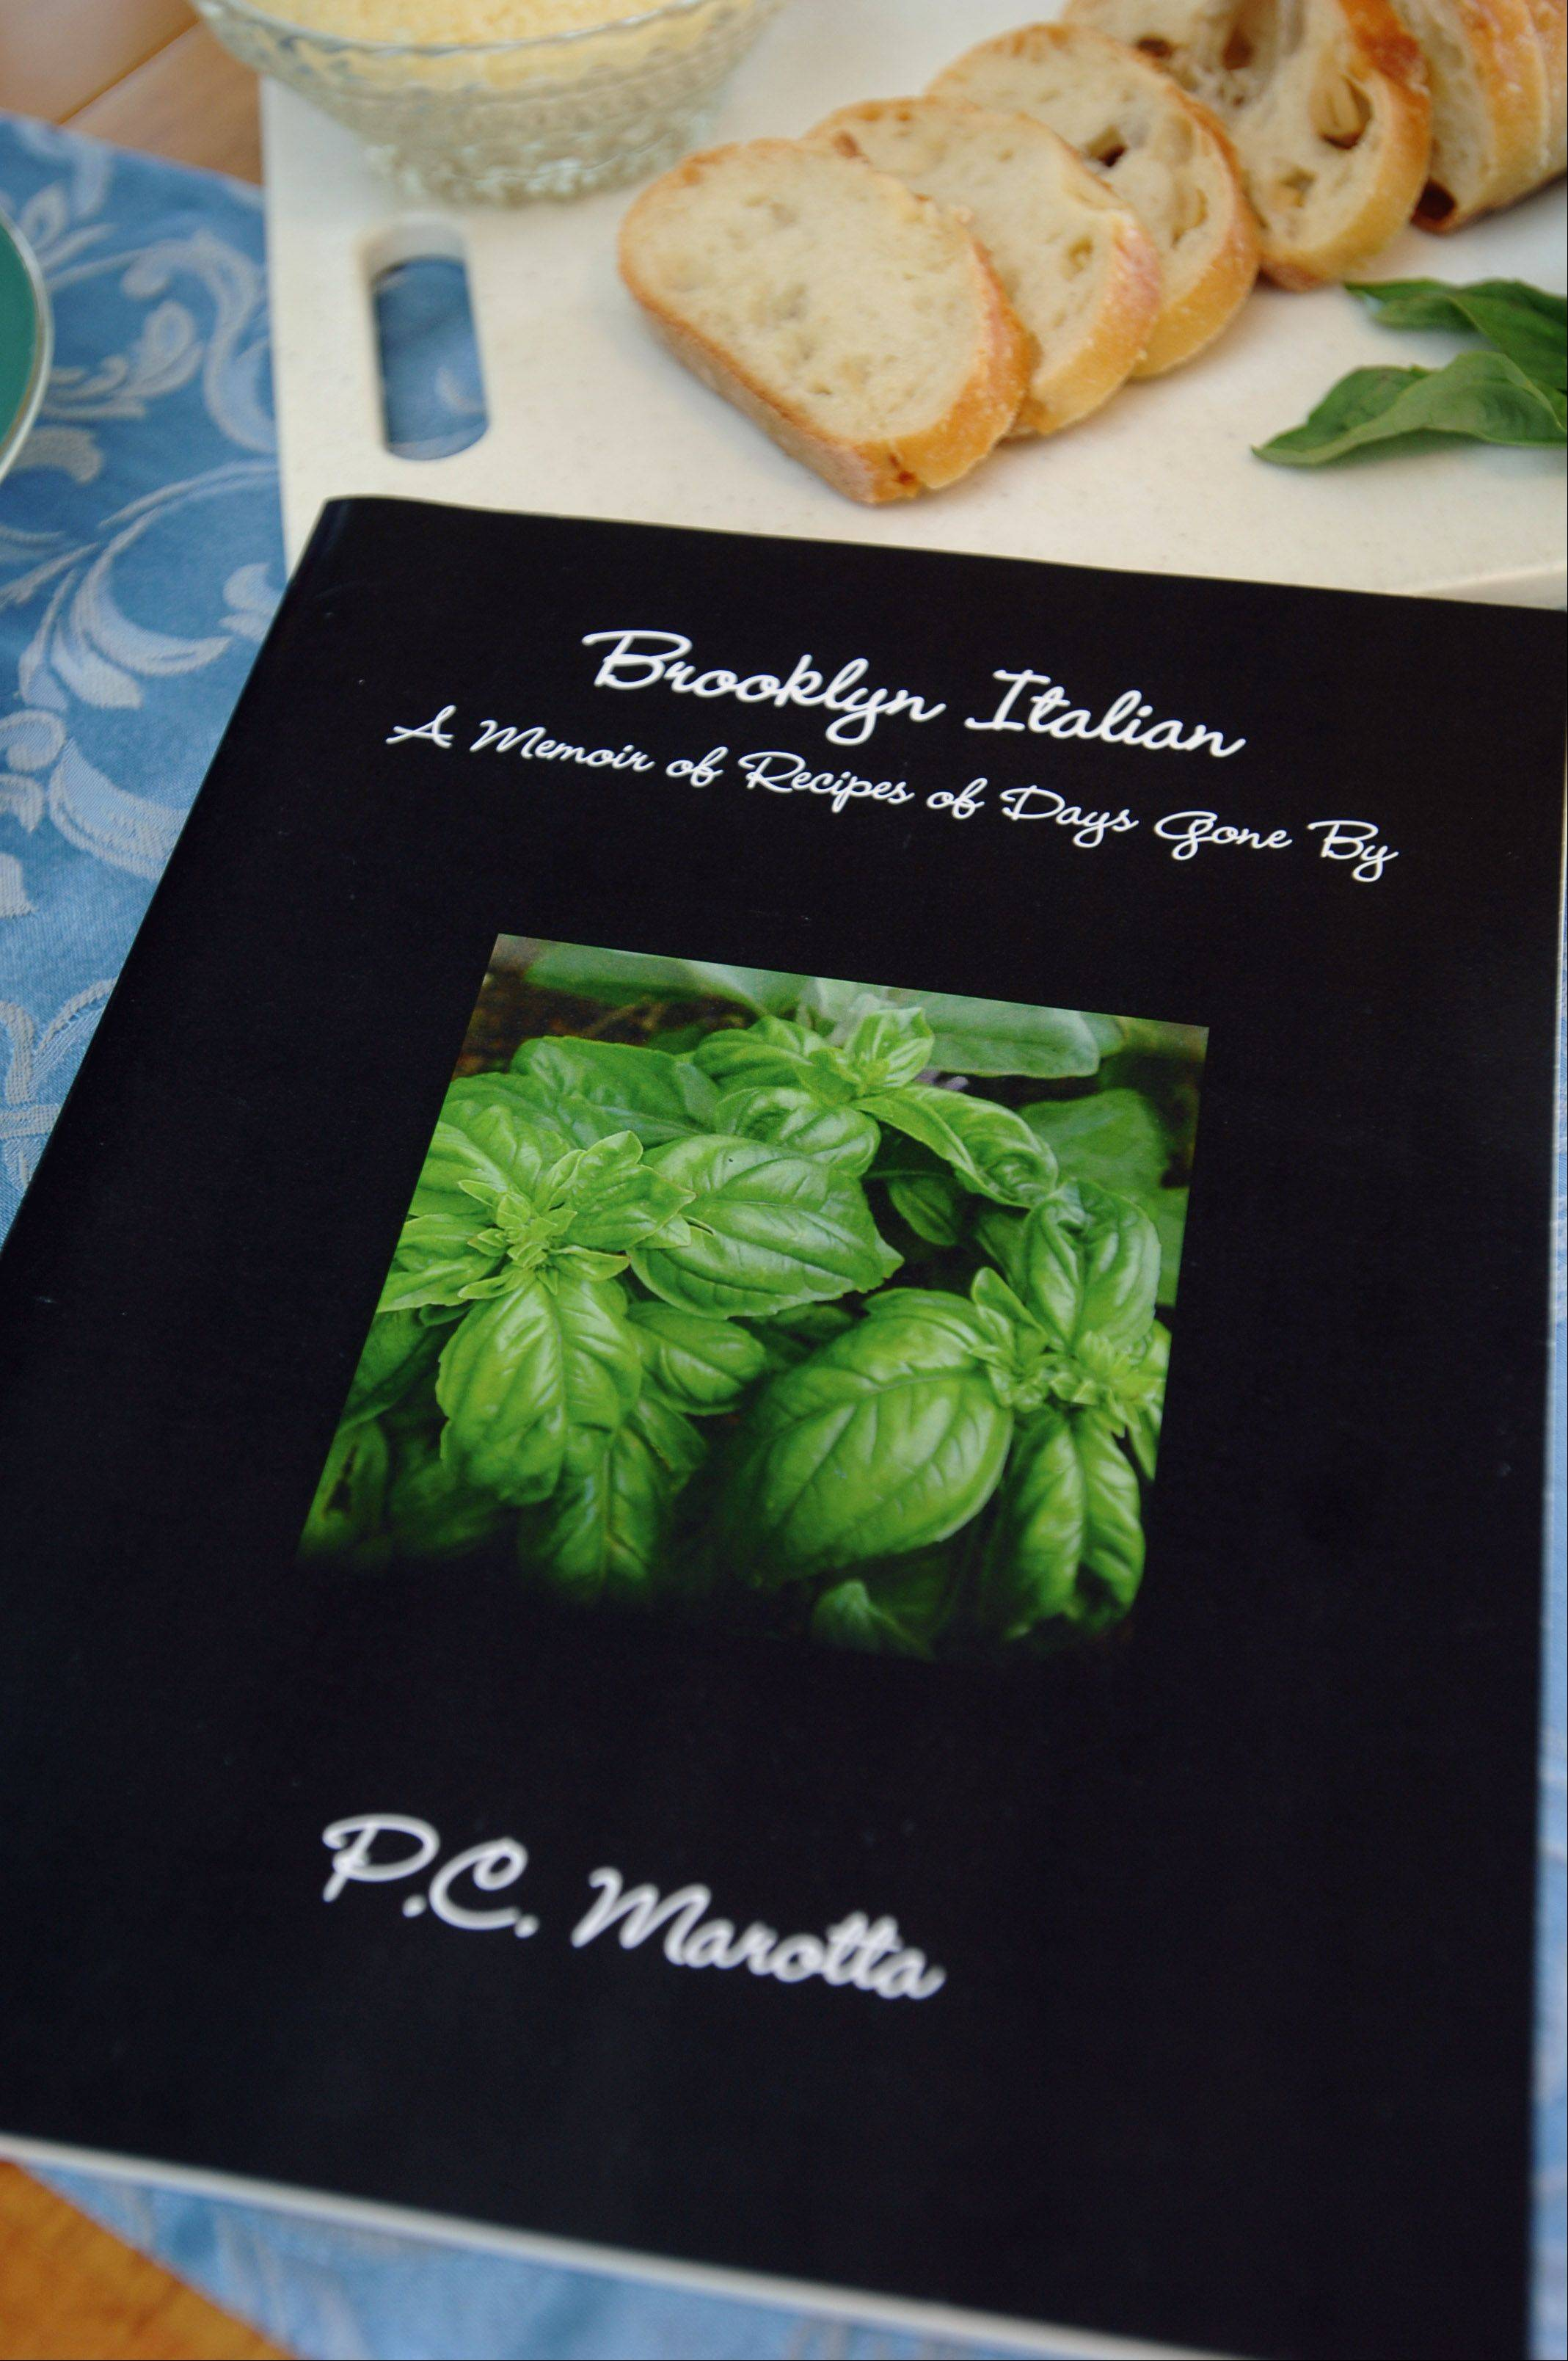 """Brooklyn Italian: A Memoir of Recipes of Days Gone By"" by Patrice Marotta"